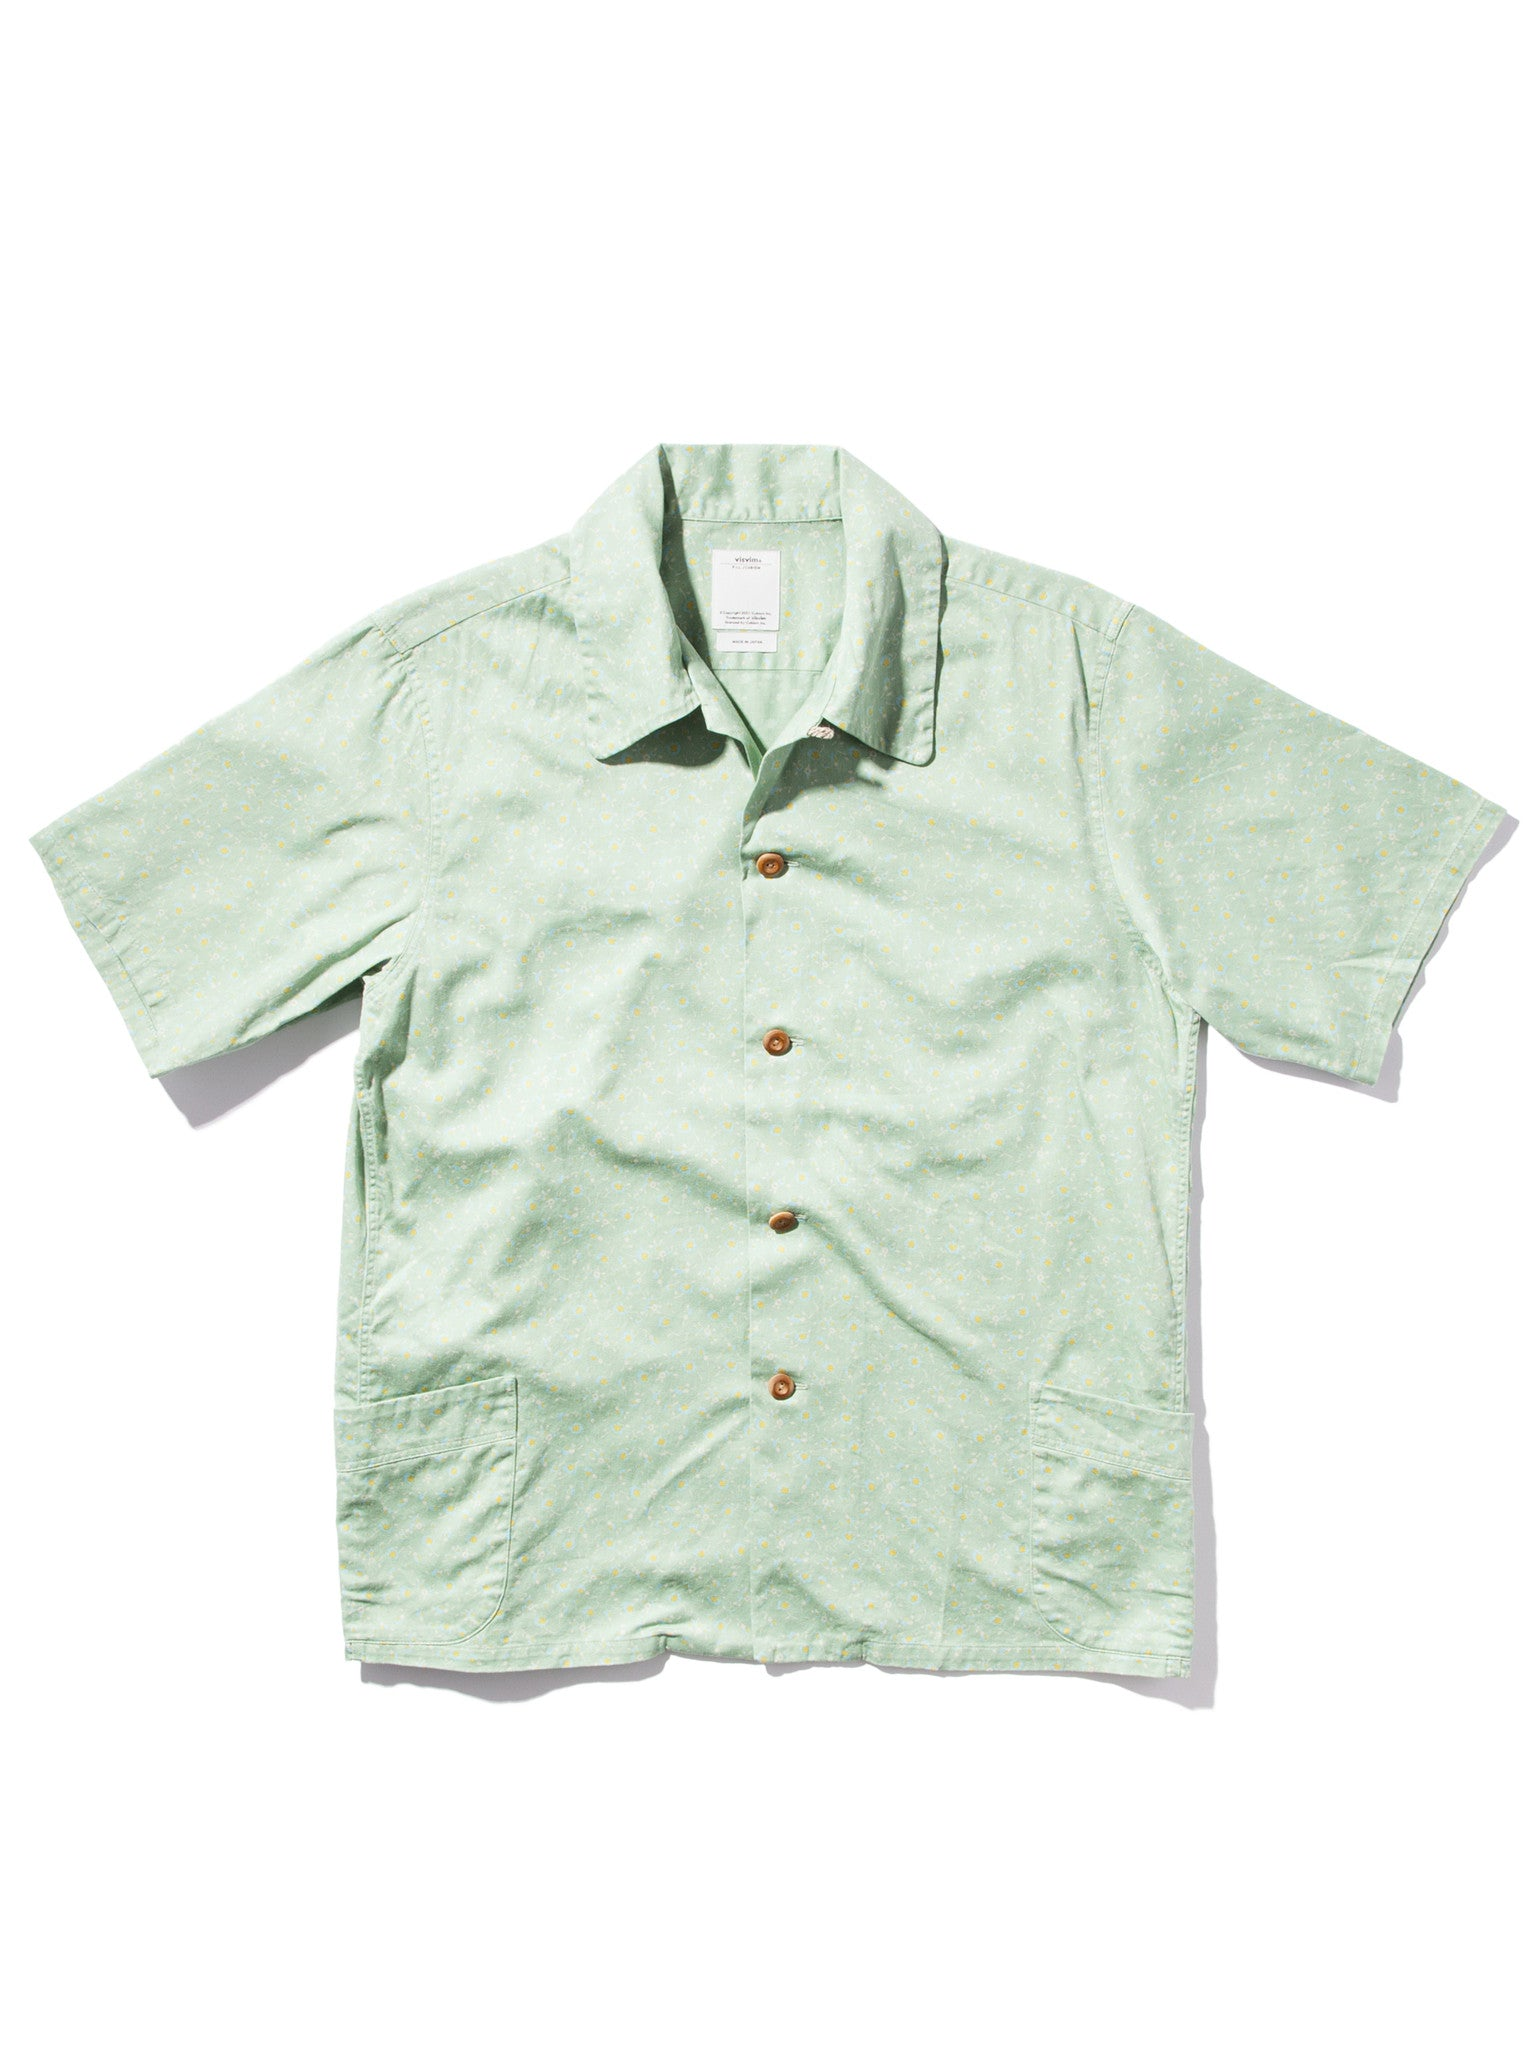 Red Kahuna Shirt S/S Petals 6